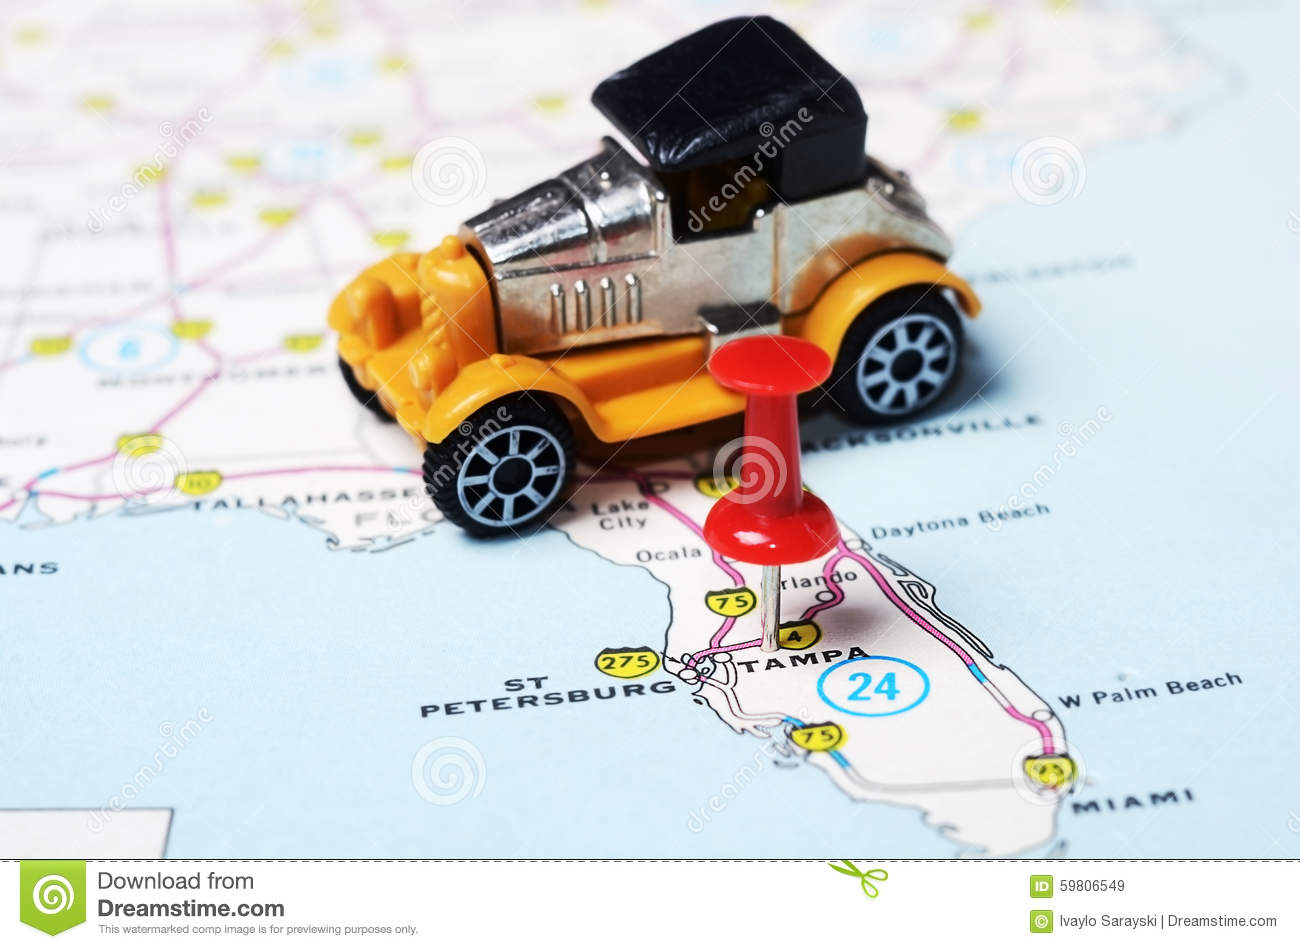 Tampa Florida Usa Map.Tampa Florida Usa Map Retro Car Stock Image Image Of Tampa Point